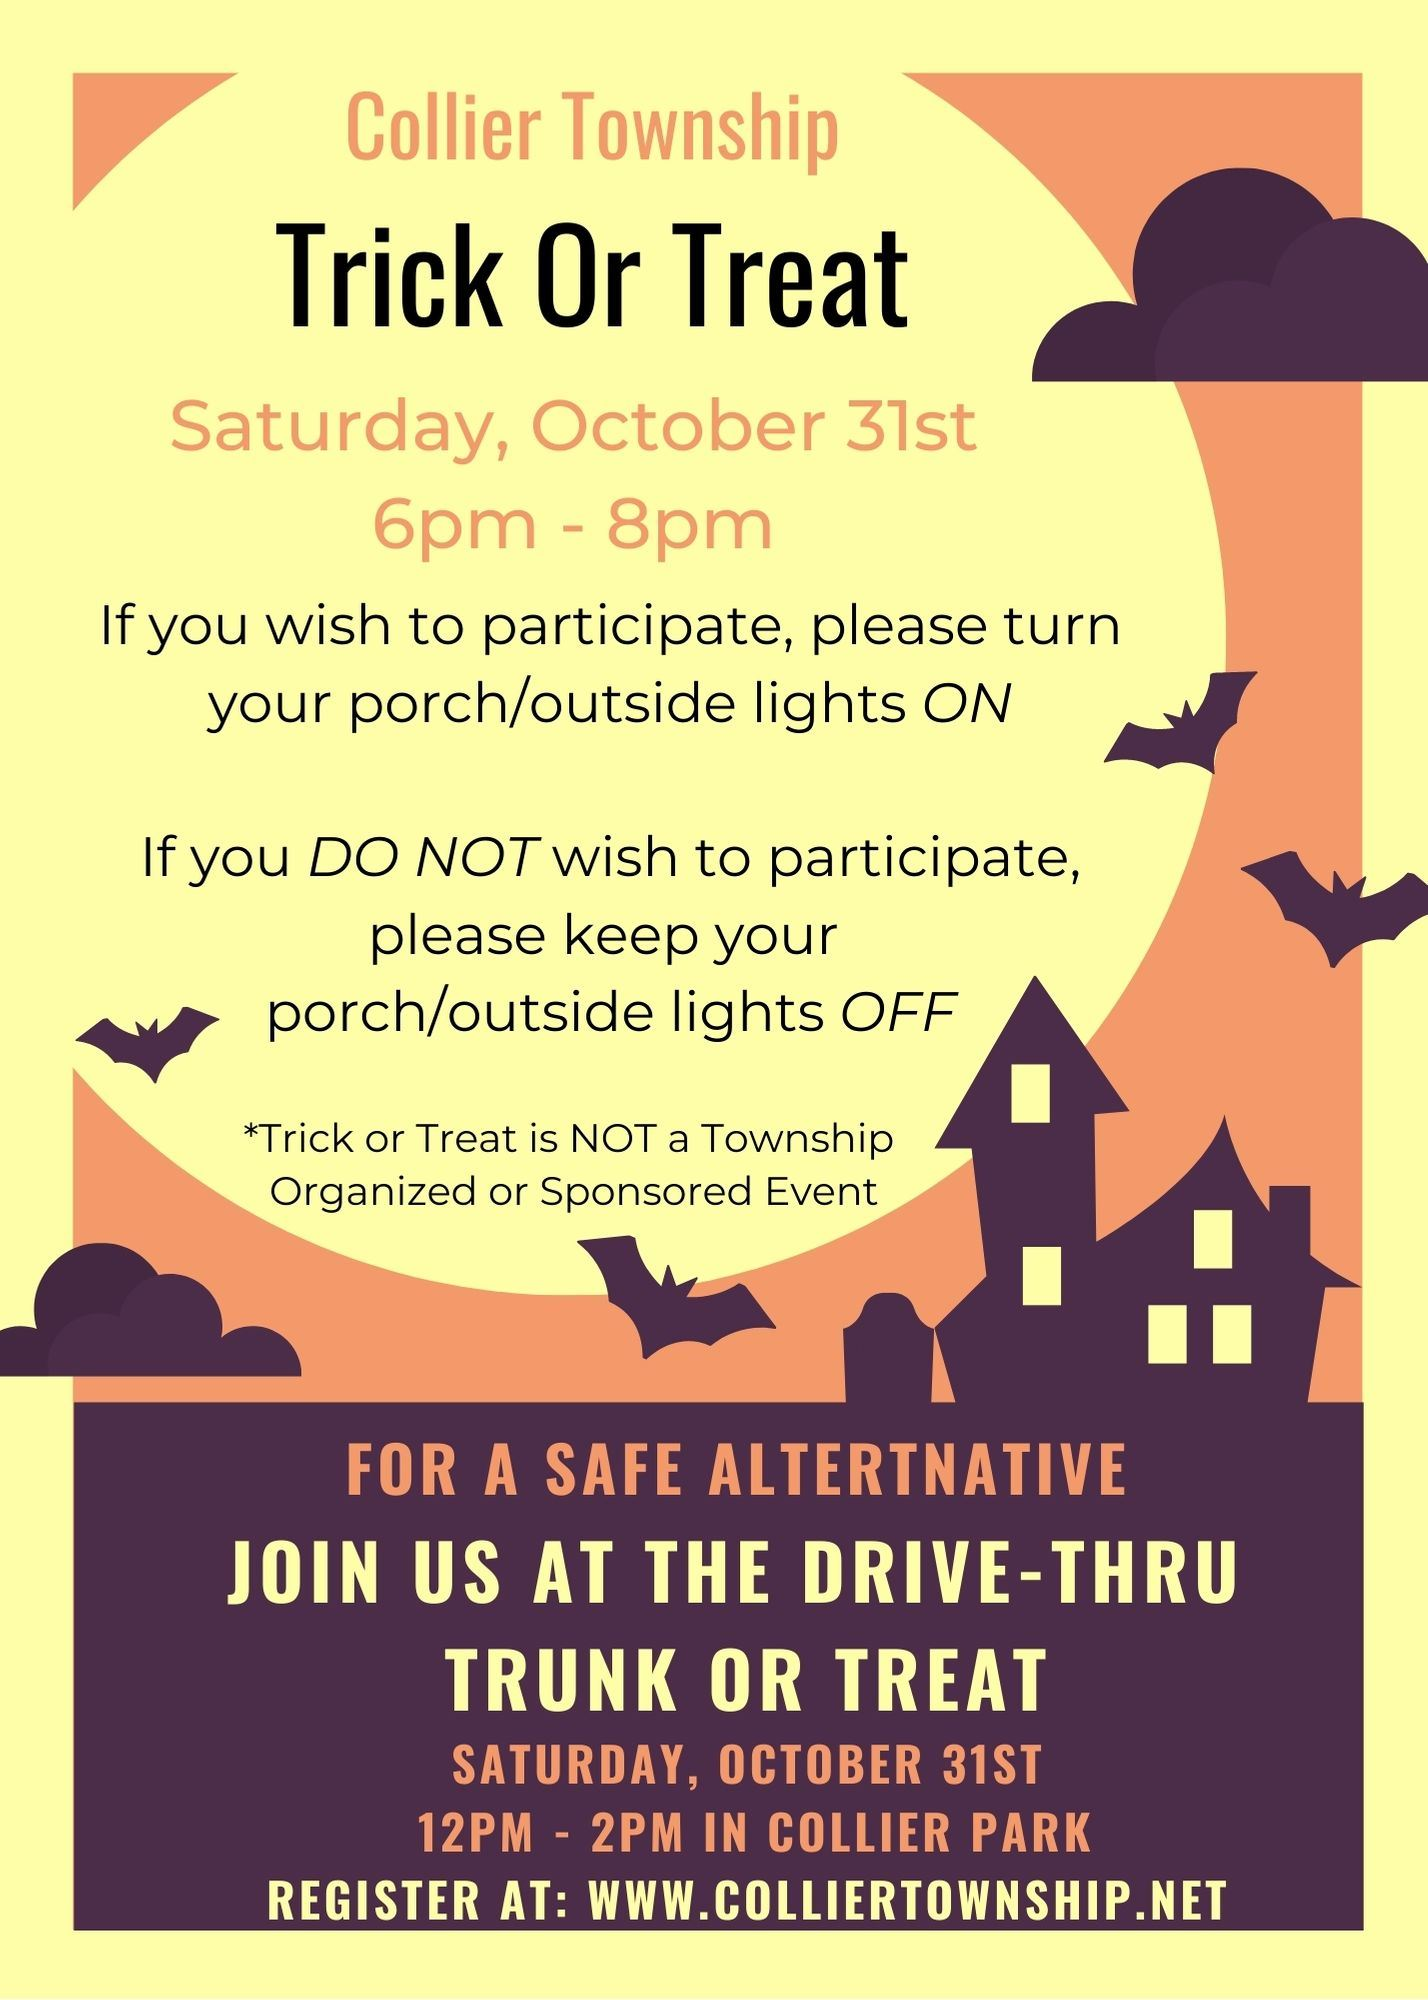 Collier Township Trick or Treat